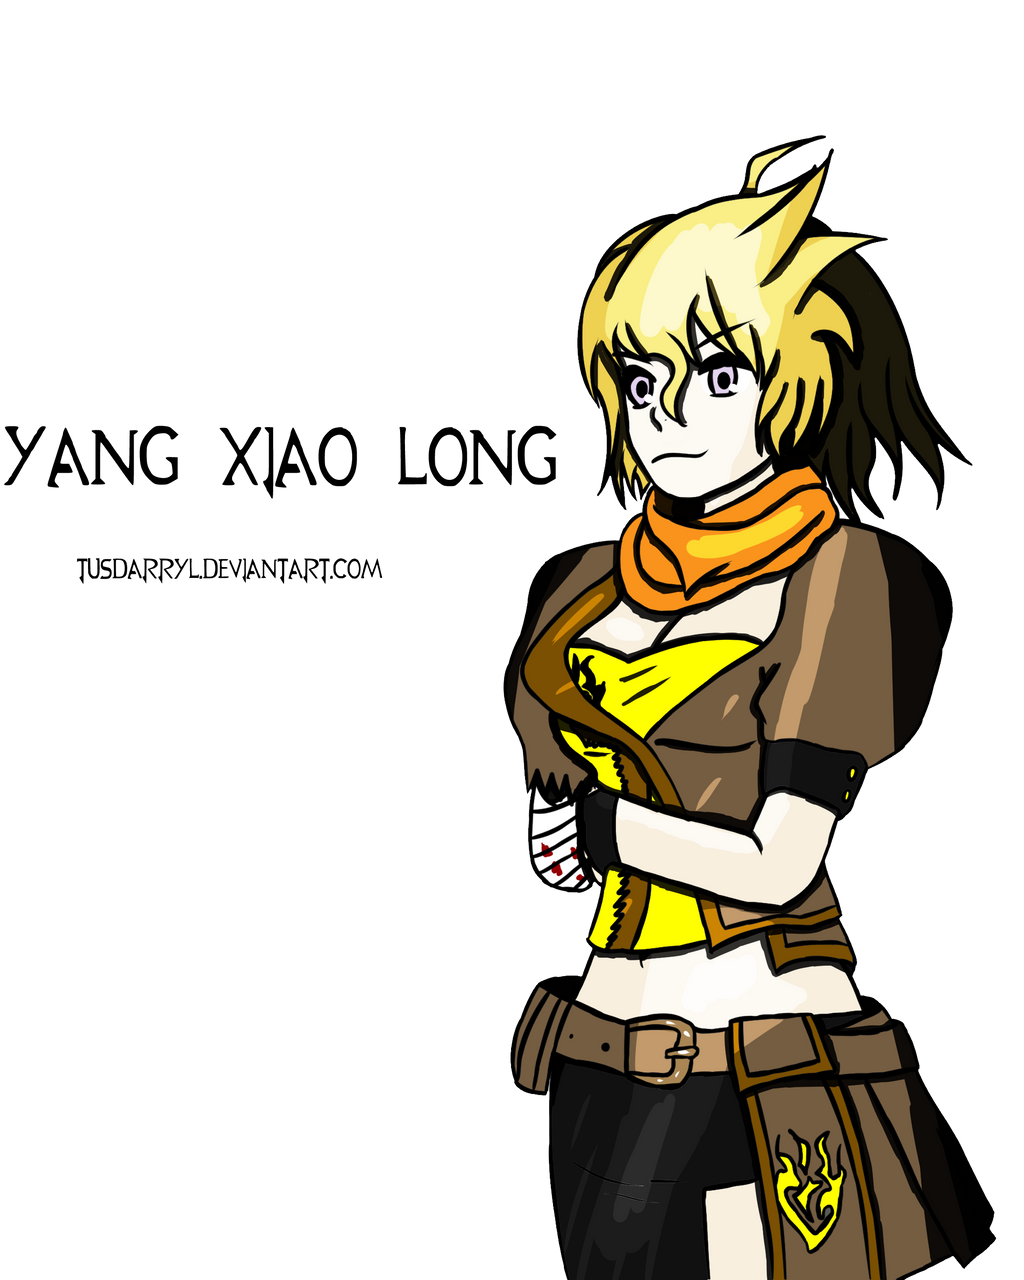 Yang Xiao Long Wallpaper: RWBY Fanart: Yang Xiao Long, In Own Style By TUSDarryl On